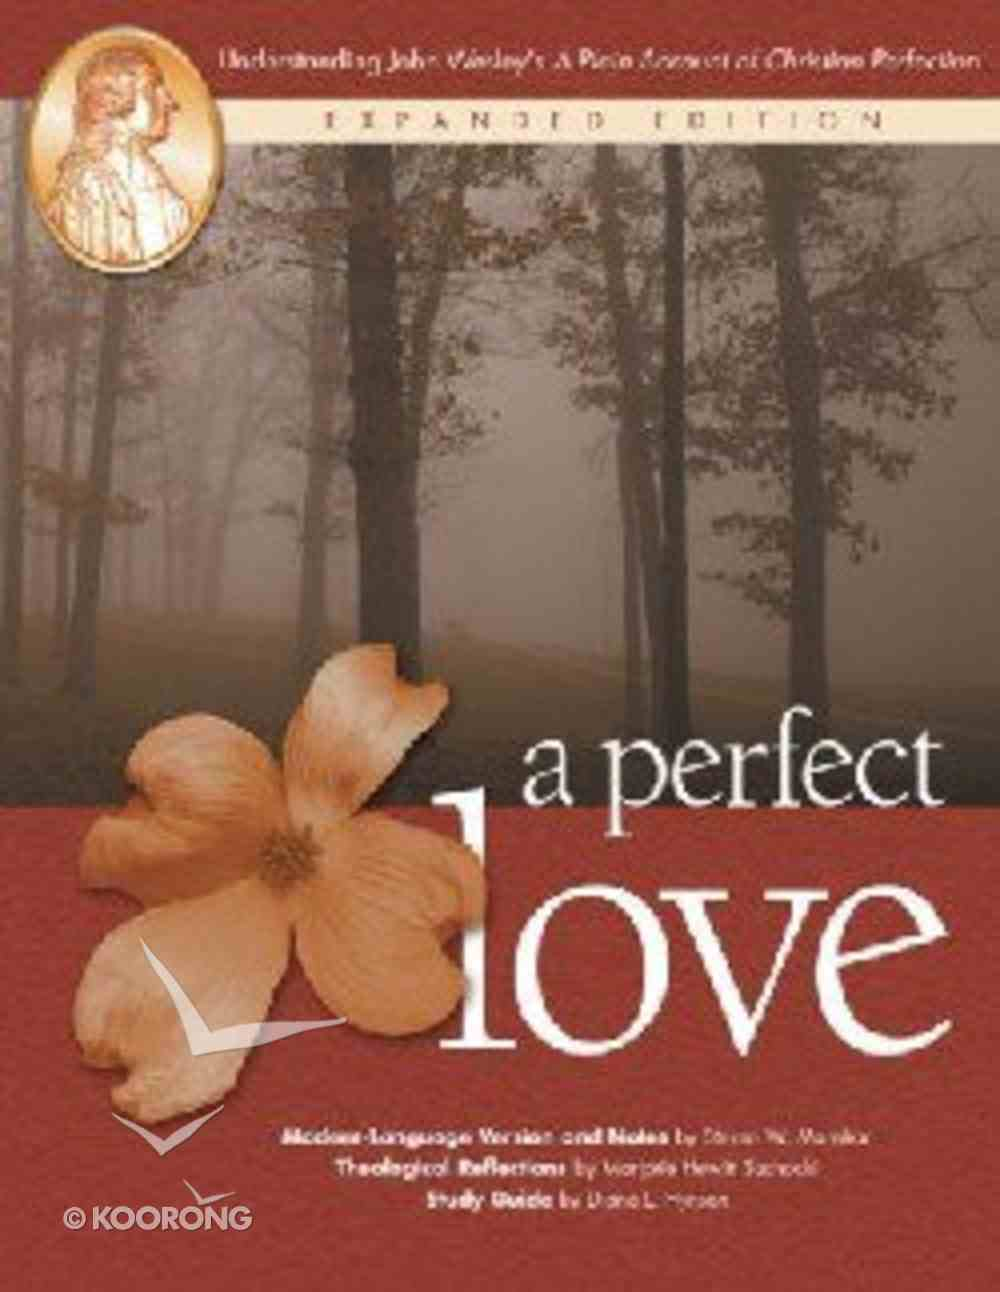 """A Perfect Love: Understanding John Wesley's """"A Plain Account of Christian Perfection"""" (Expanded 2004) Paperback"""